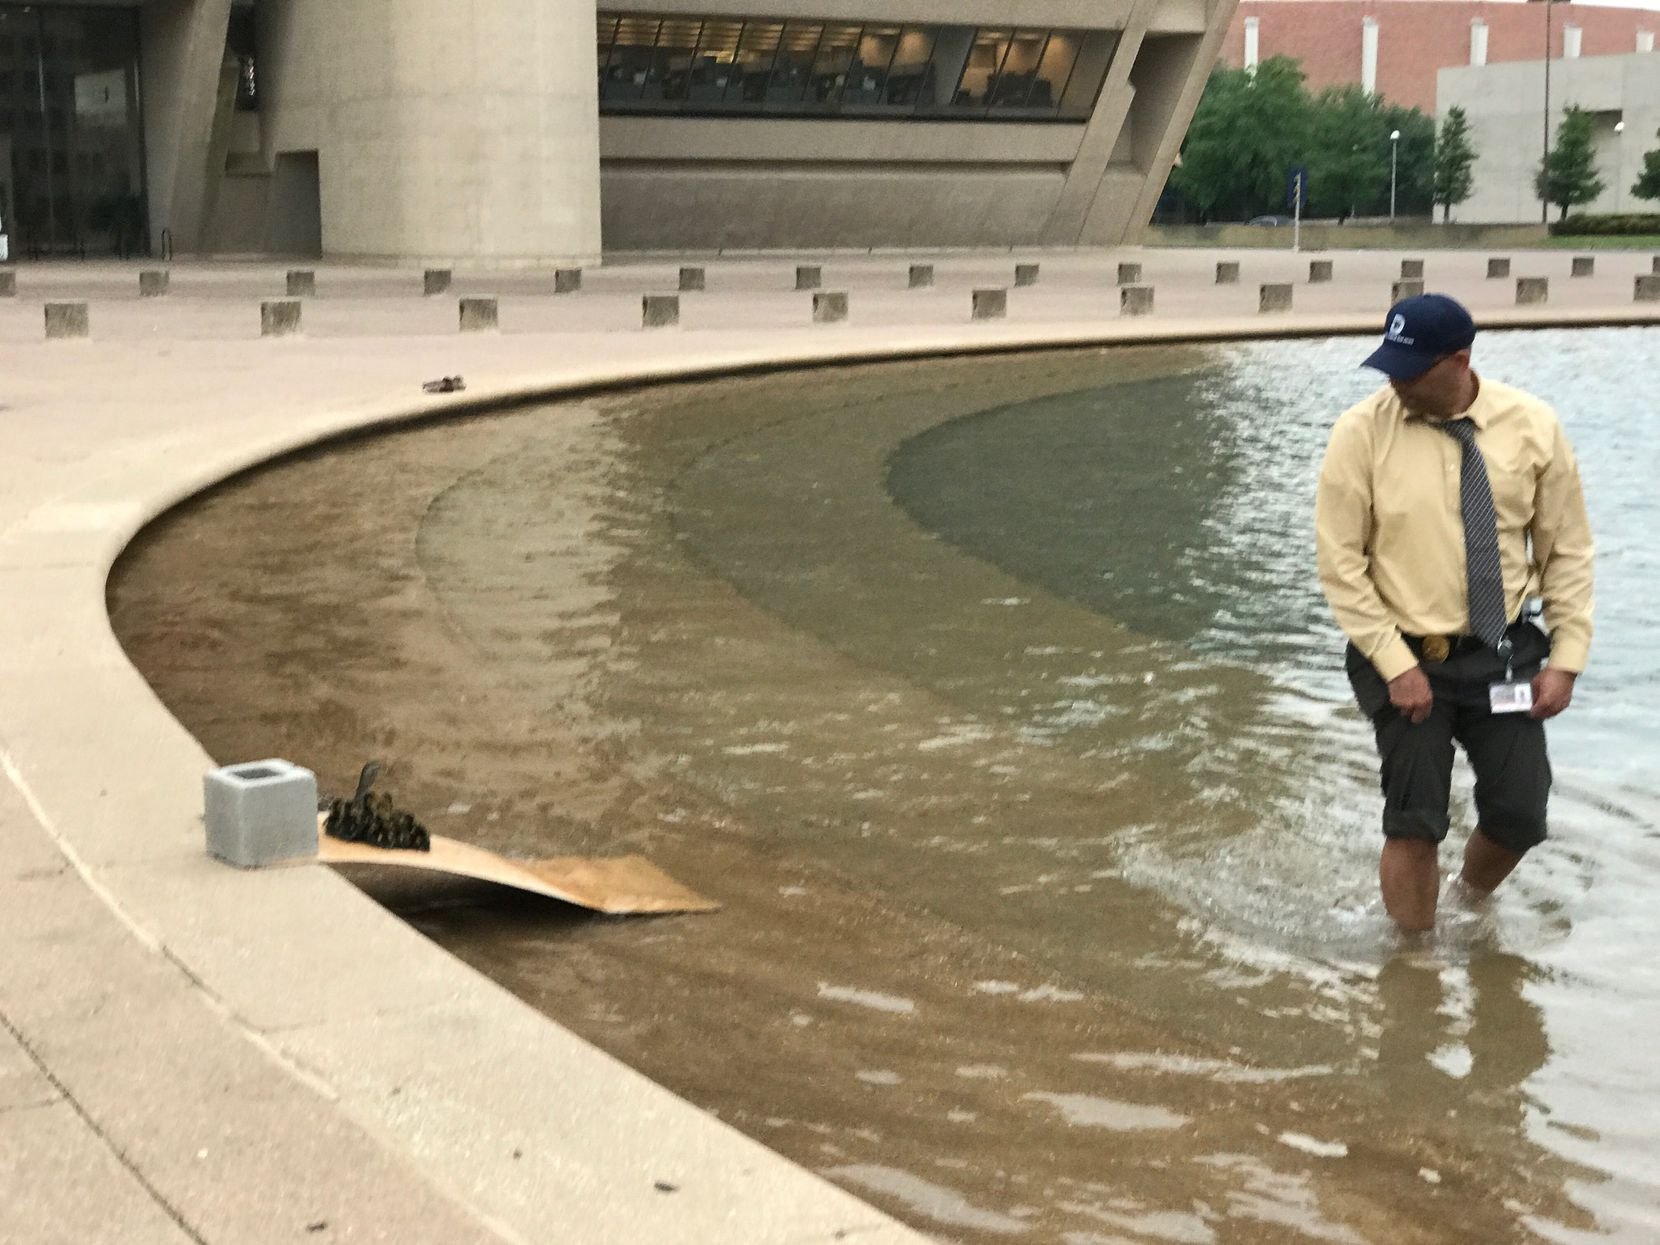 Dallas Animal Services director Ed Jamison spent his late Tuesday afternoon making sure that a duck and her 12 babies were out of harm's way at Dallas City Hall's reflecting pool.